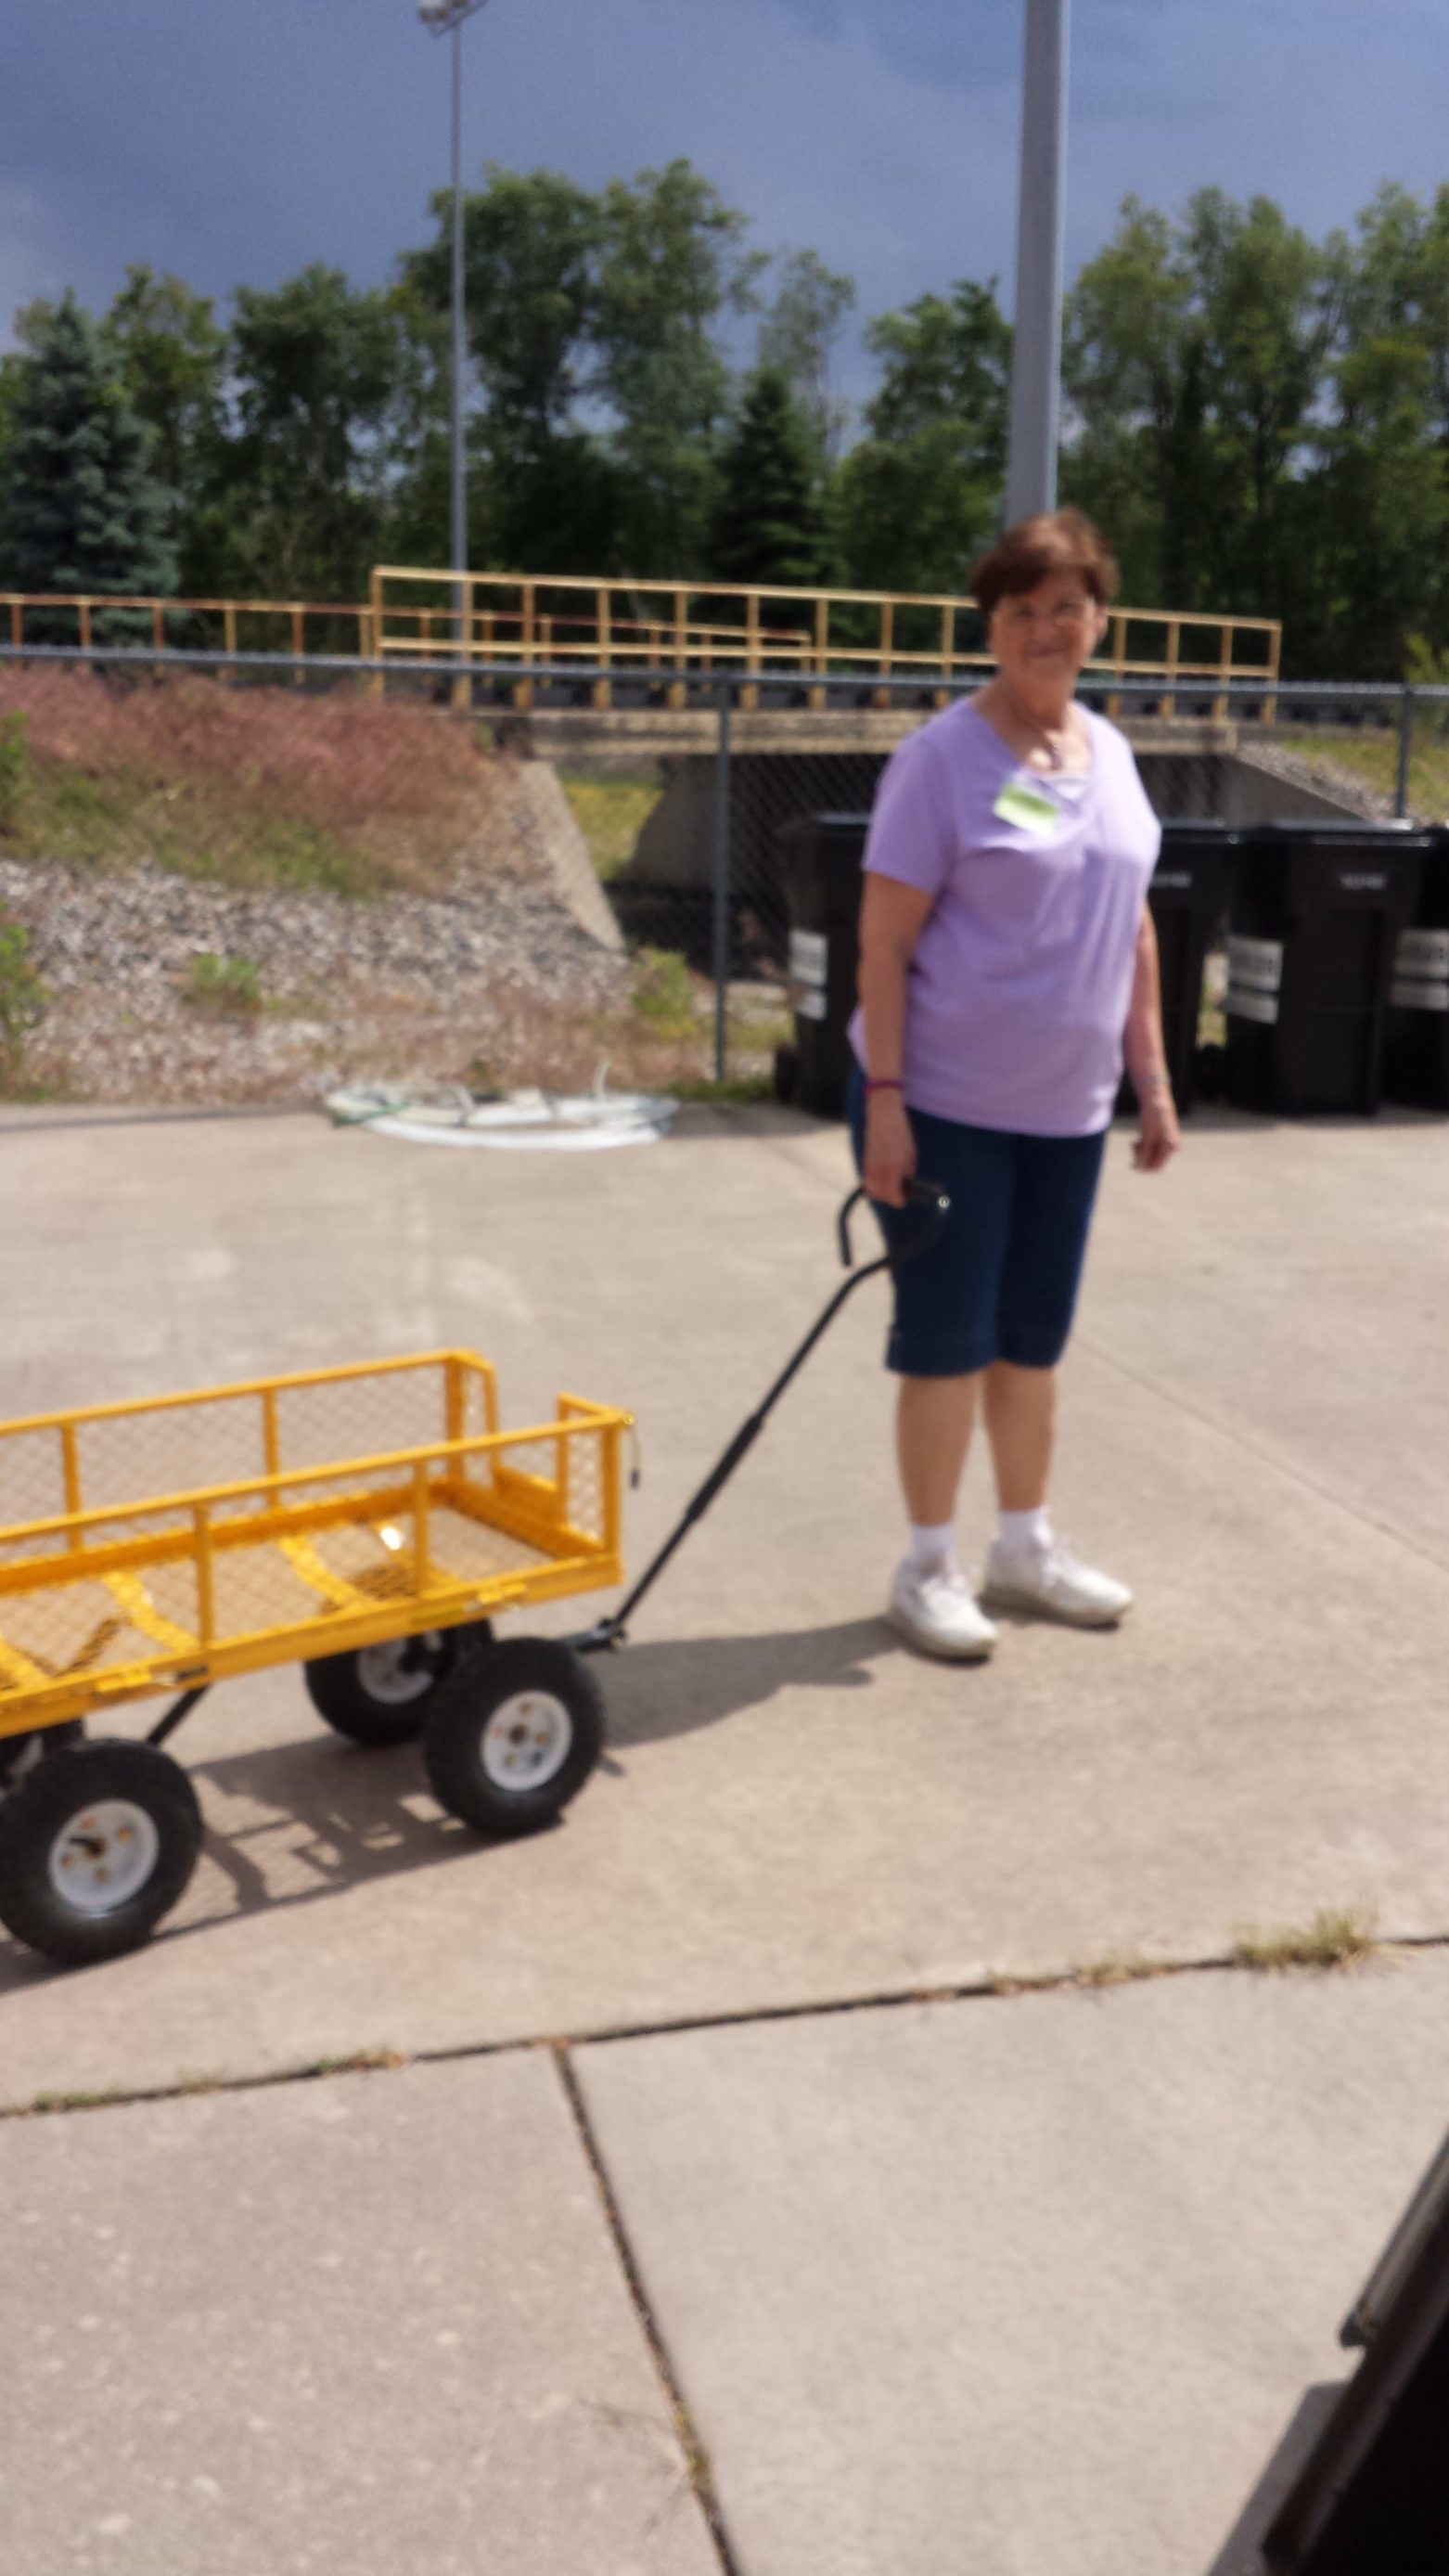 Volunteers use our Yellow Garden Carts to assist you in getting your selections to your car.